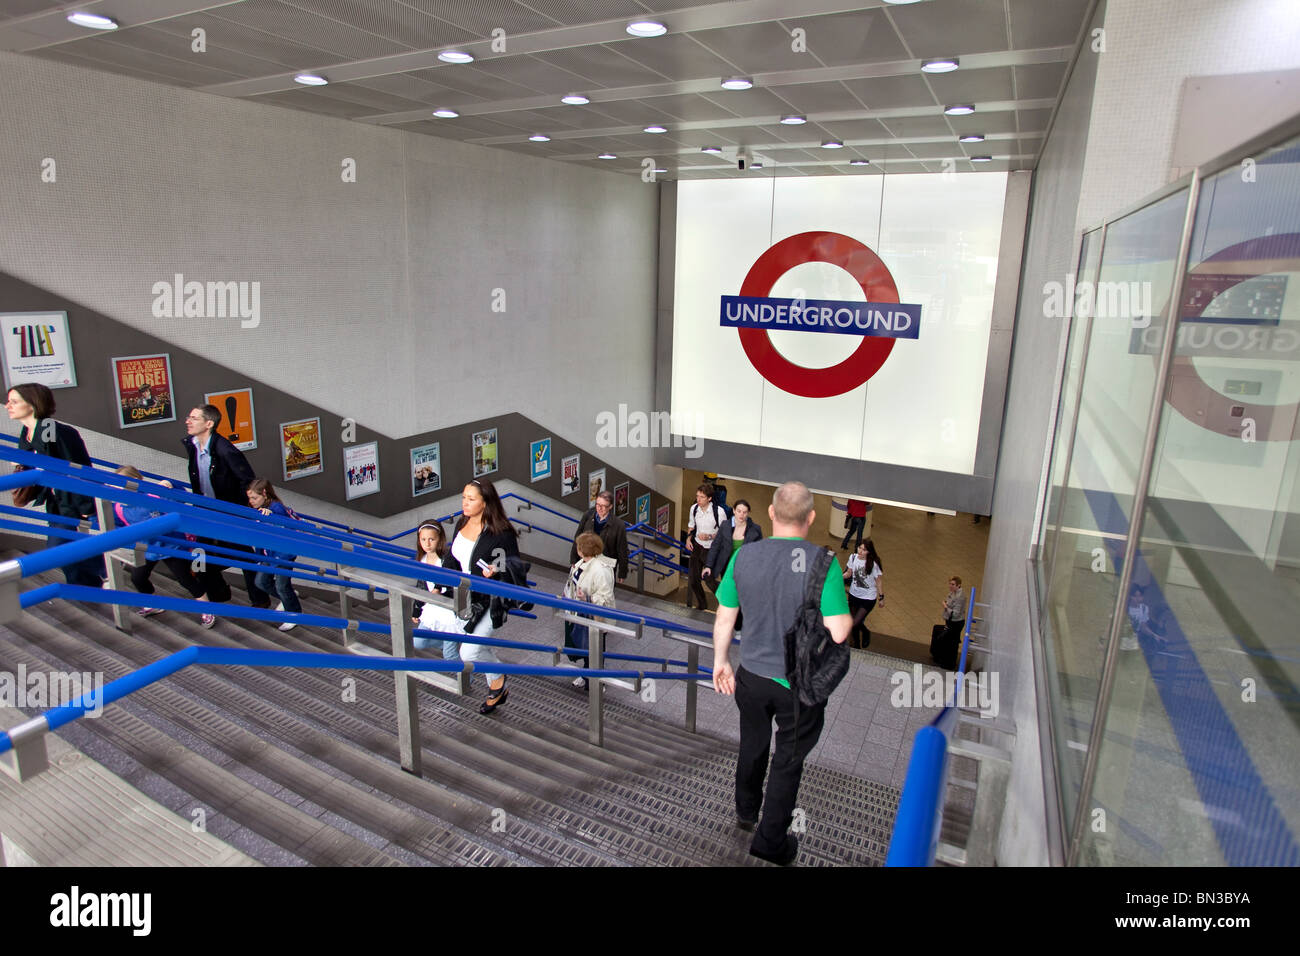 Entrance of an underground station in London - Stock Image